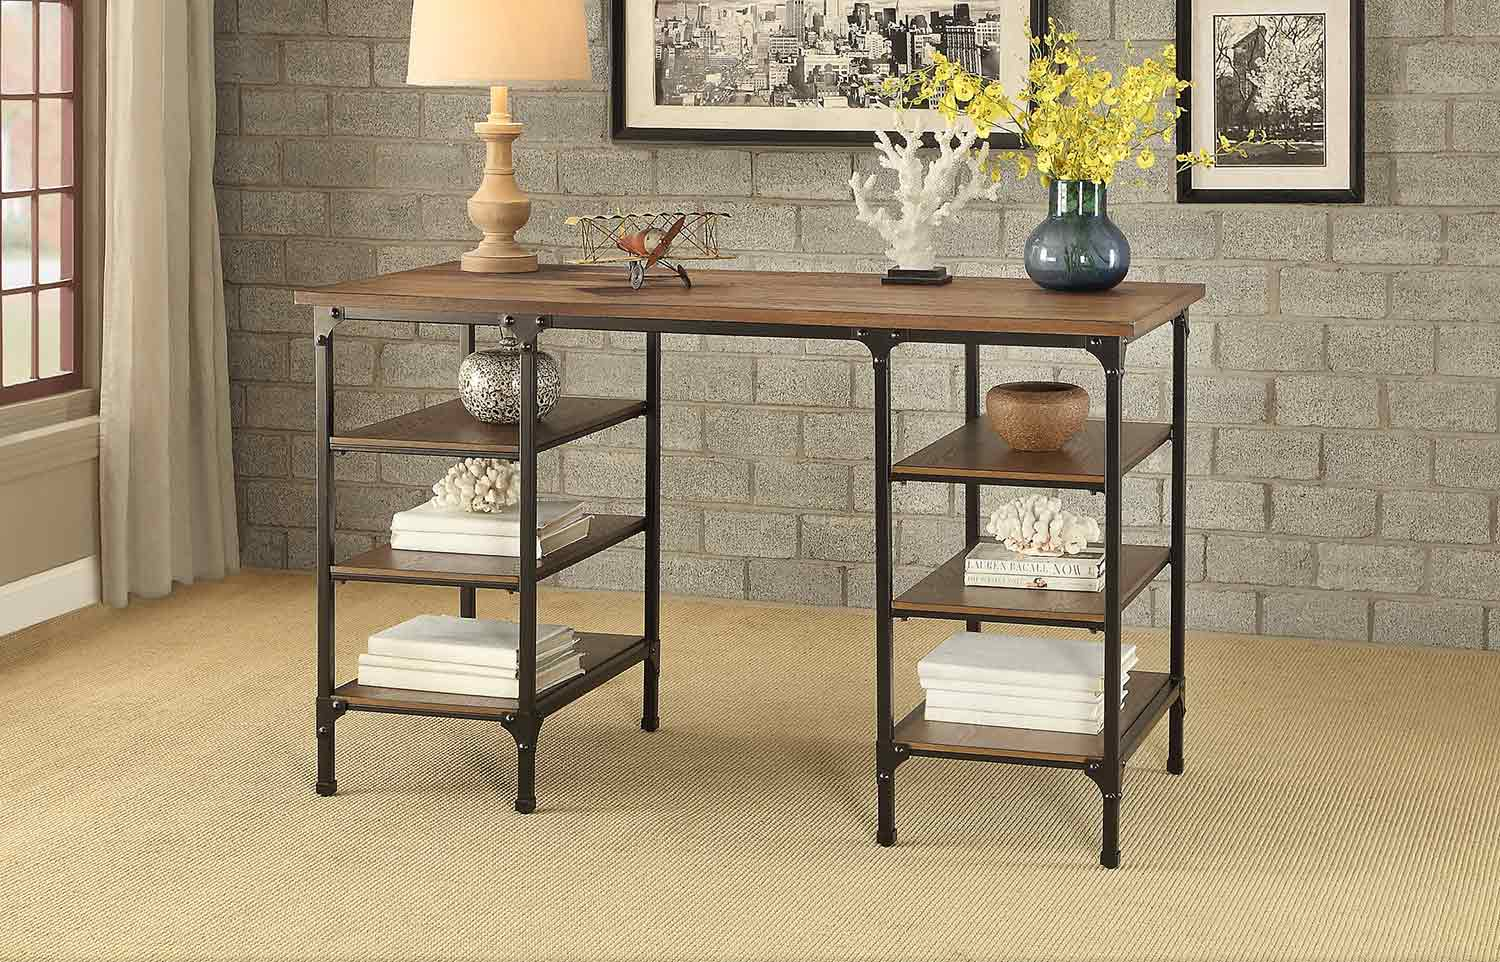 Homelegance Millwood Counter Height Writing Desk - Distressed Weathered Ash